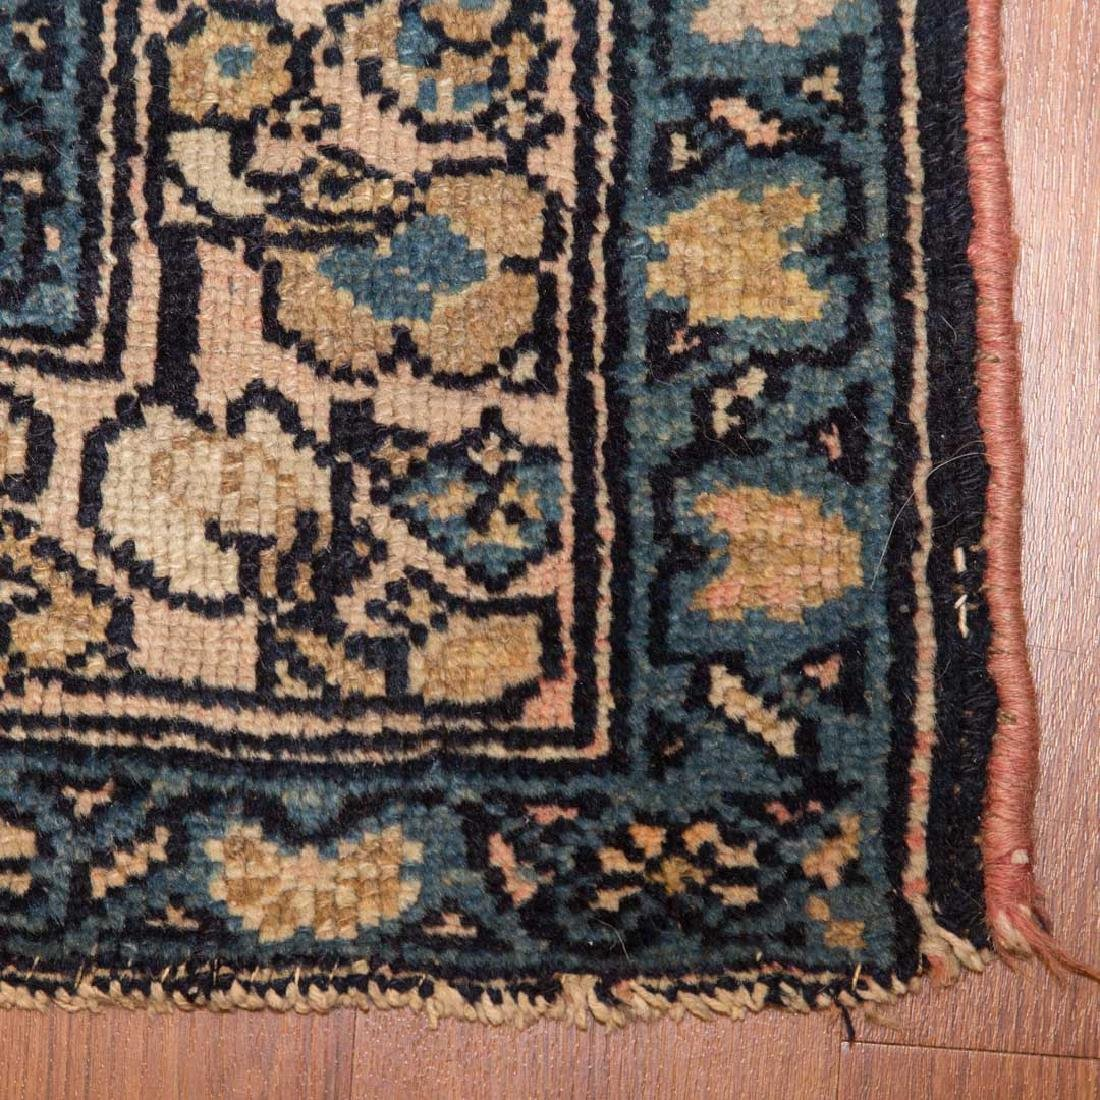 Two antique Hamadan rugs, Persia, circa 1920 - 4